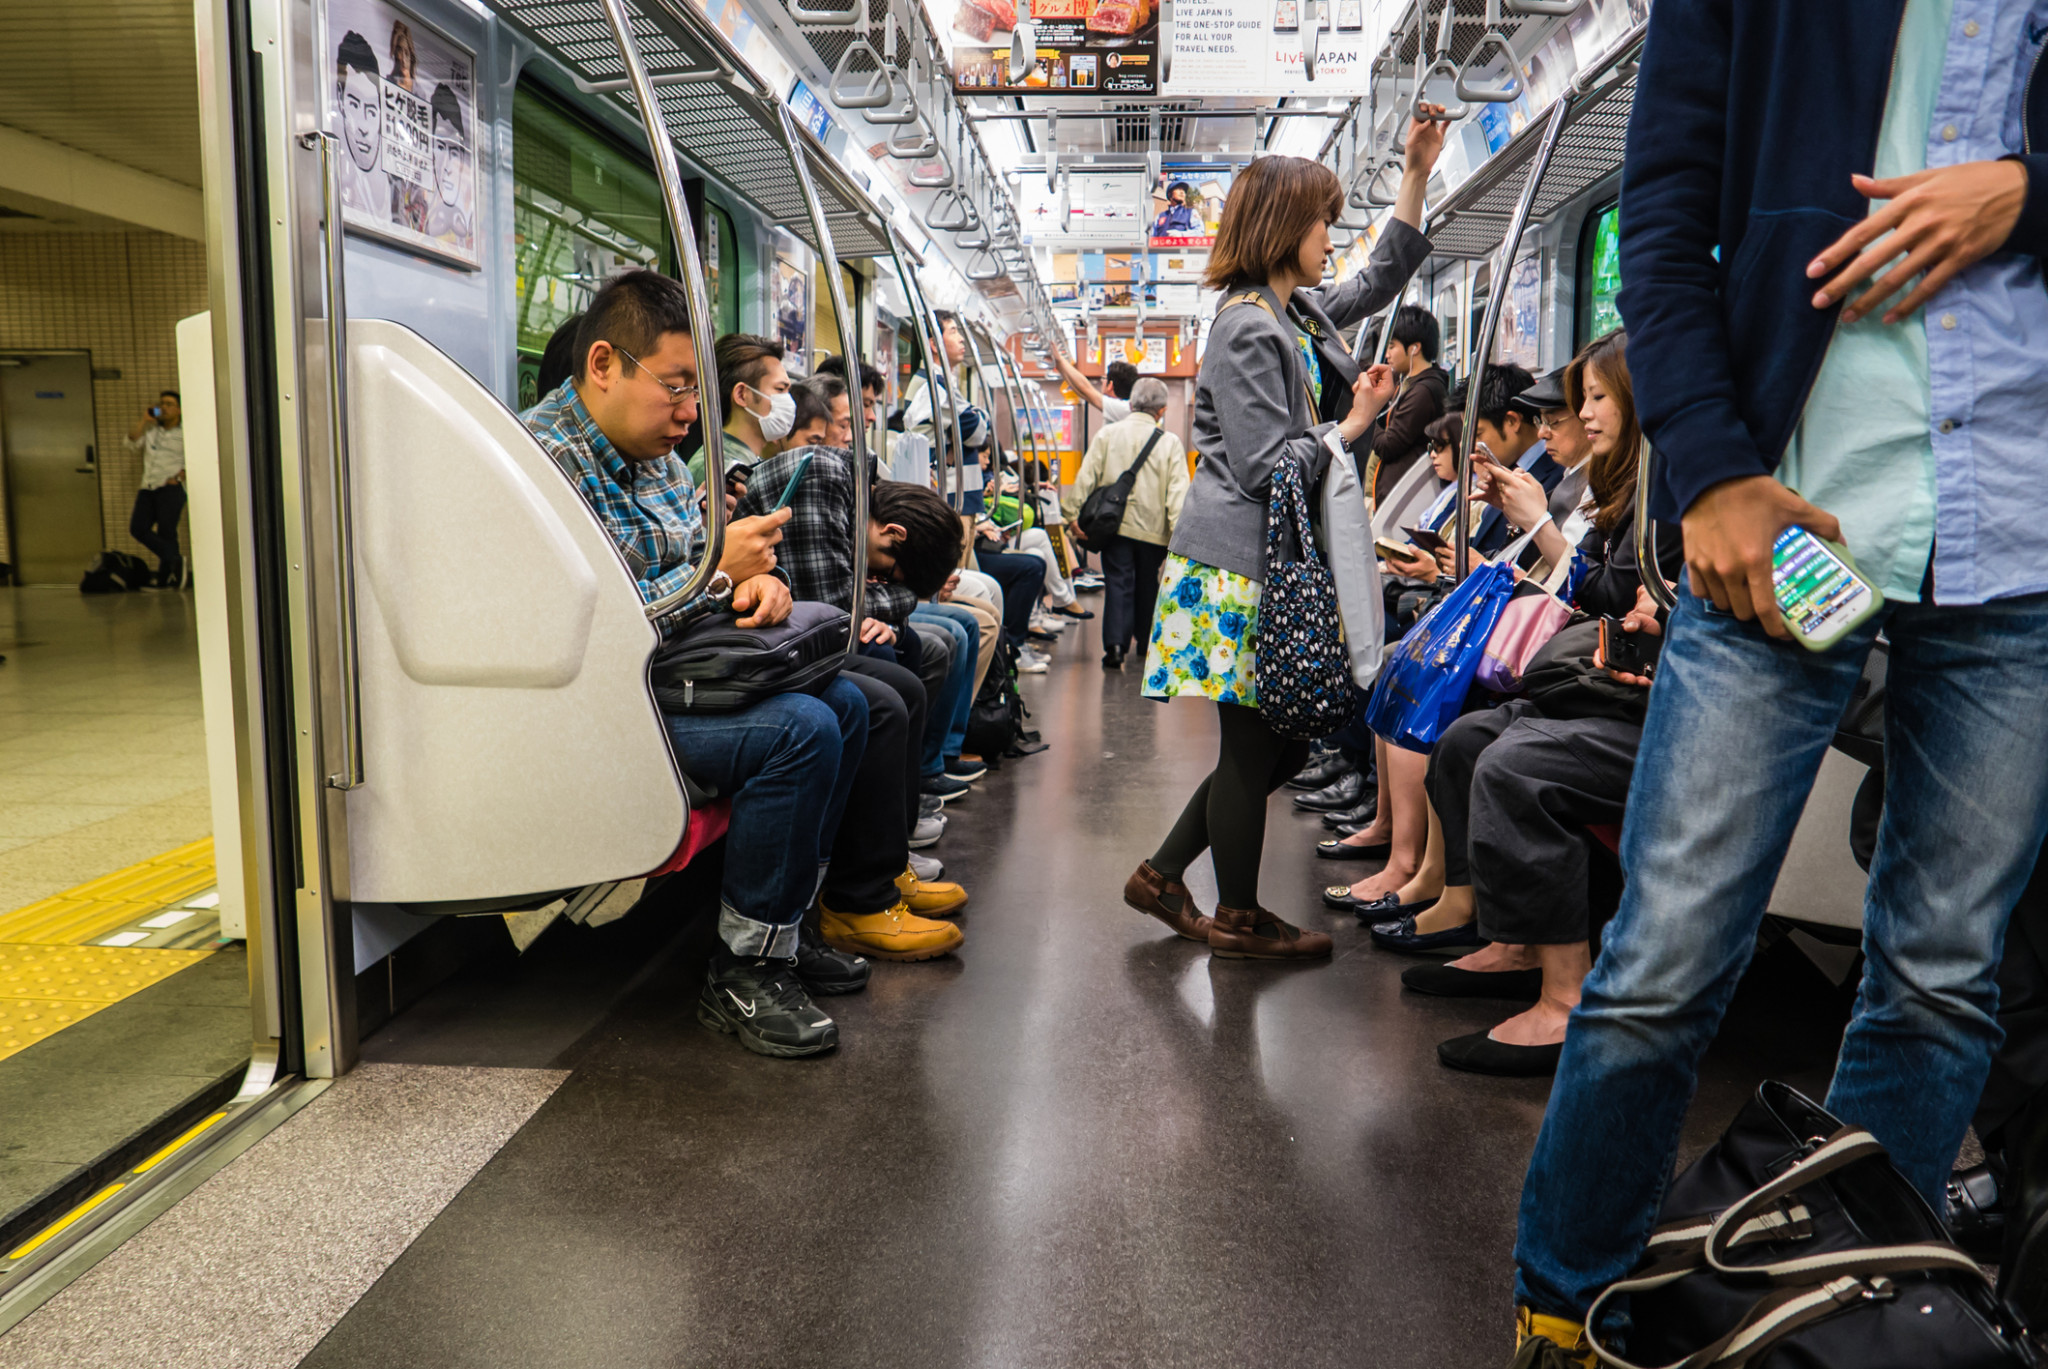 The media will be allowed to use public transport during Tokyo 2020 after all - but only after they have spent 14 days in Japan ©Getty Images